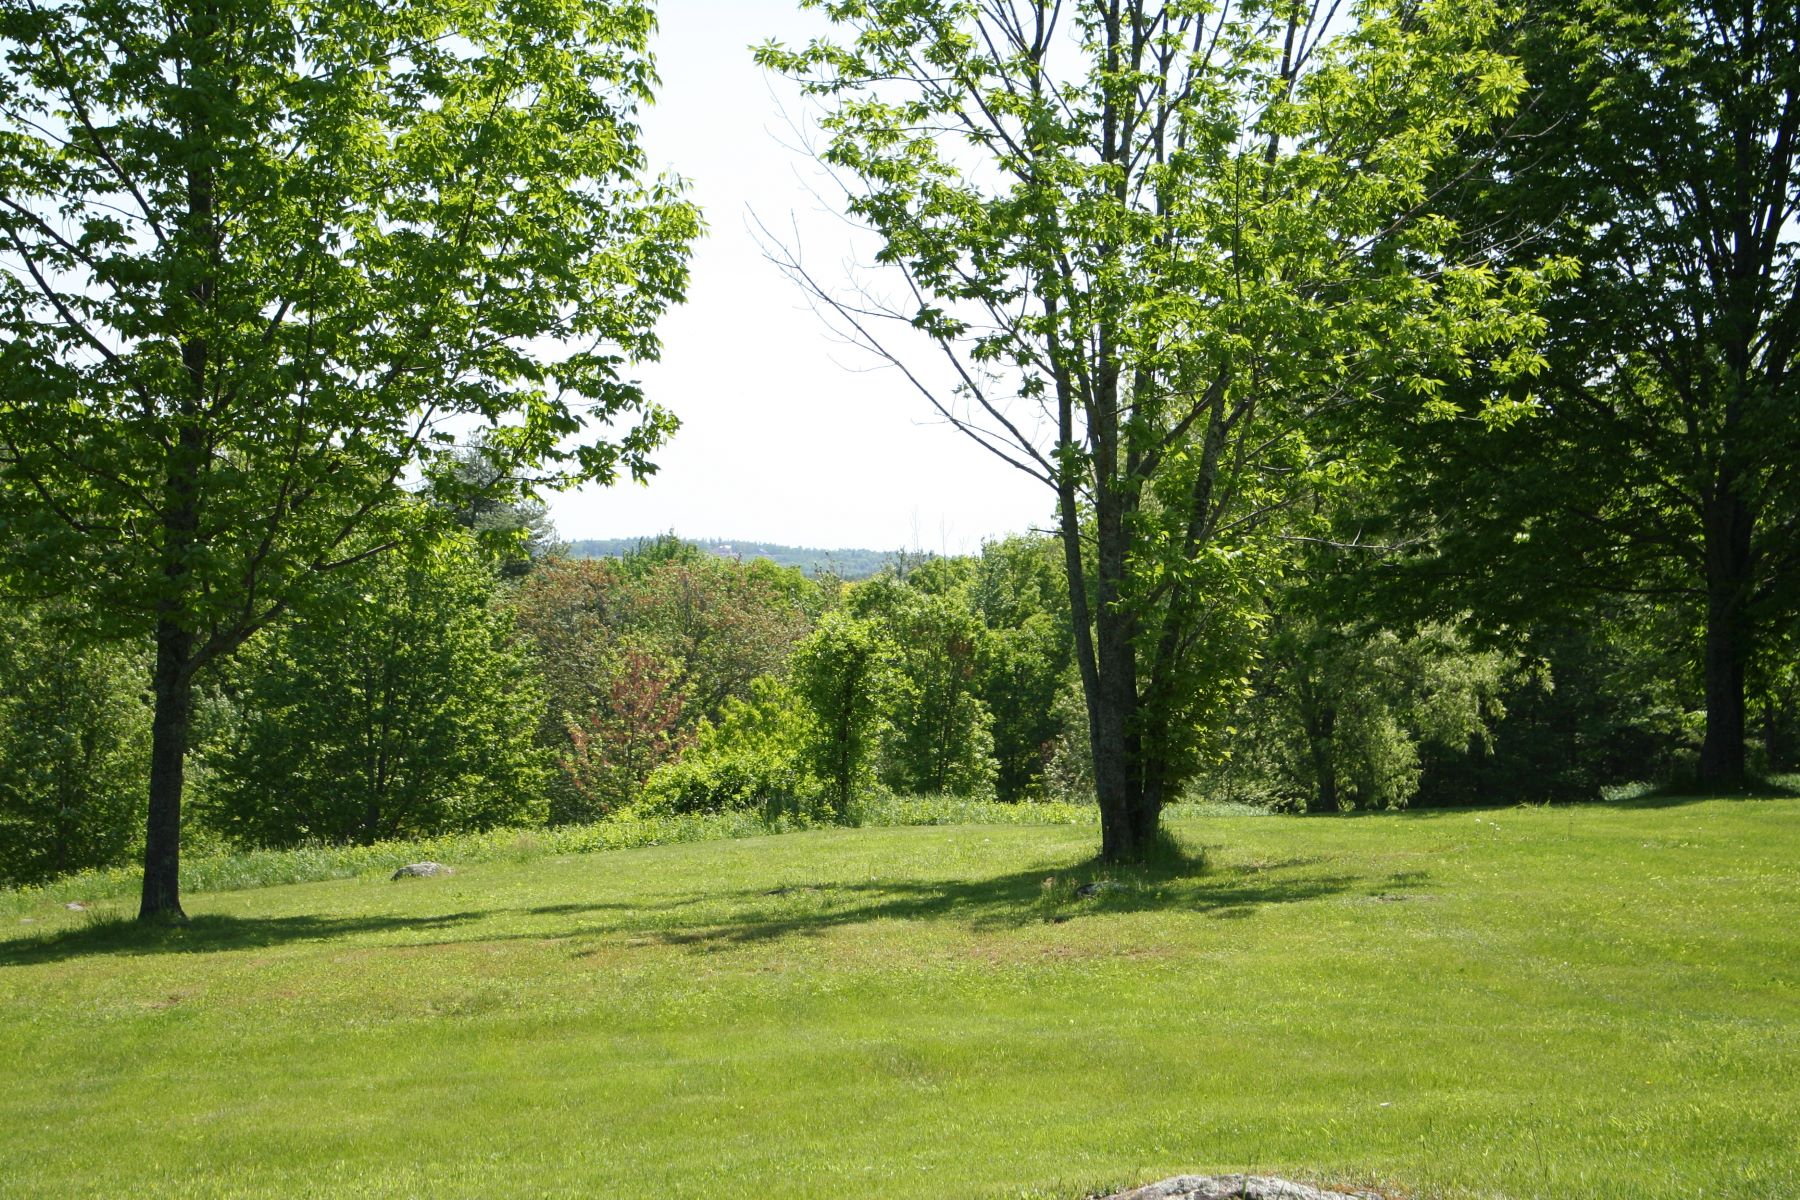 Land for Sale at Land available in Henniker 581 Depot Hill Rd Henniker, New Hampshire 03242 United States